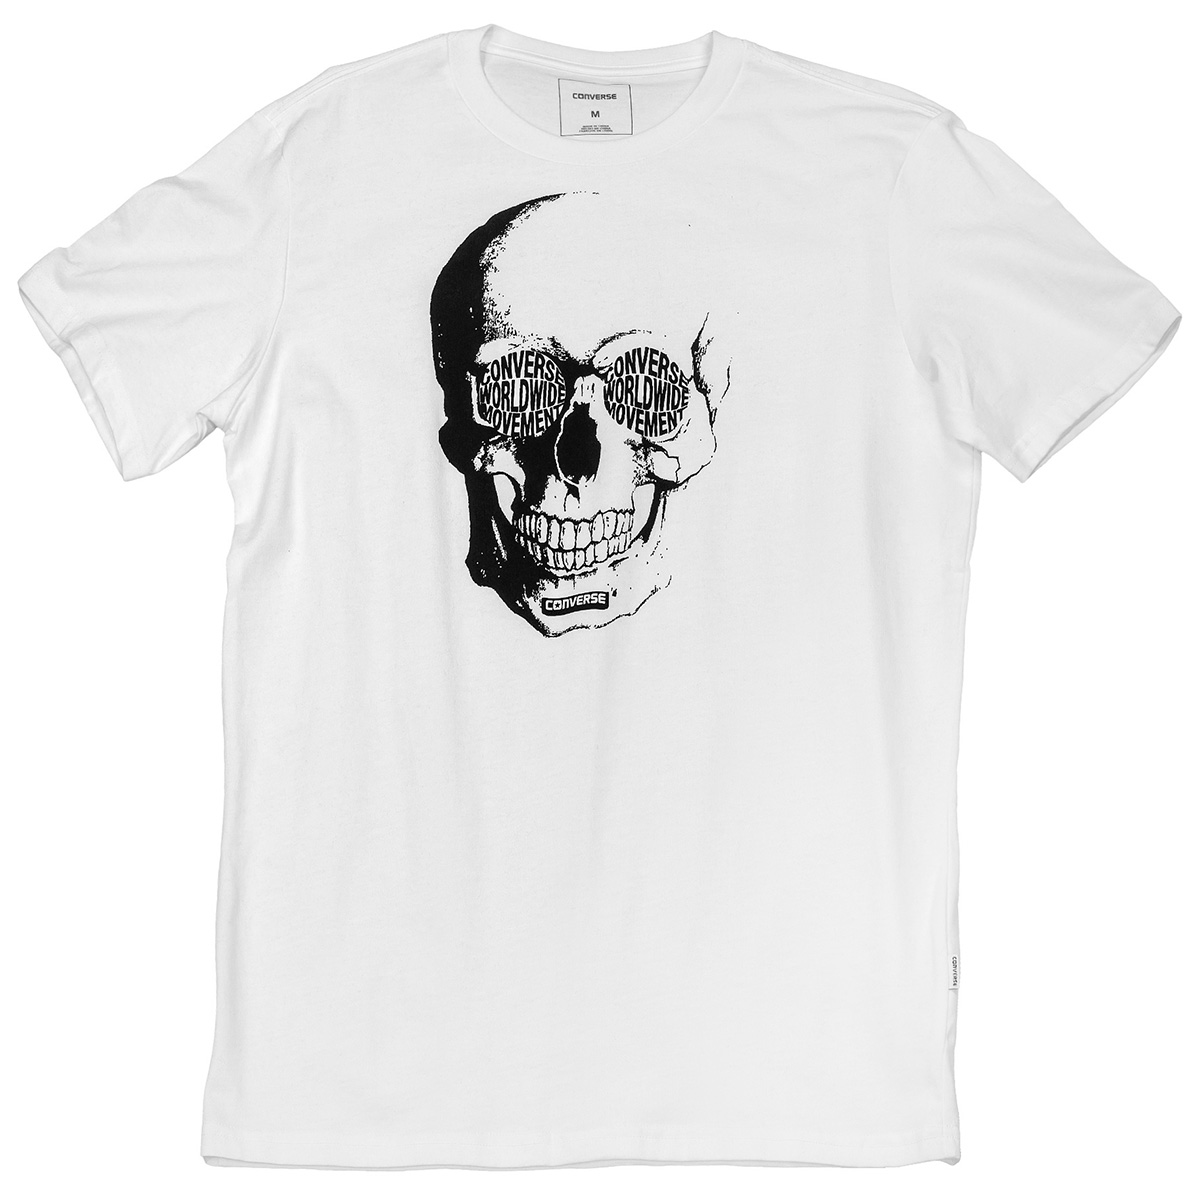 Футболка мужская Converse Van De Wall Skull Tee, цвет: белый. 10004721102. Размер XL (52) футболка converse футболка amt streaming color skull tee